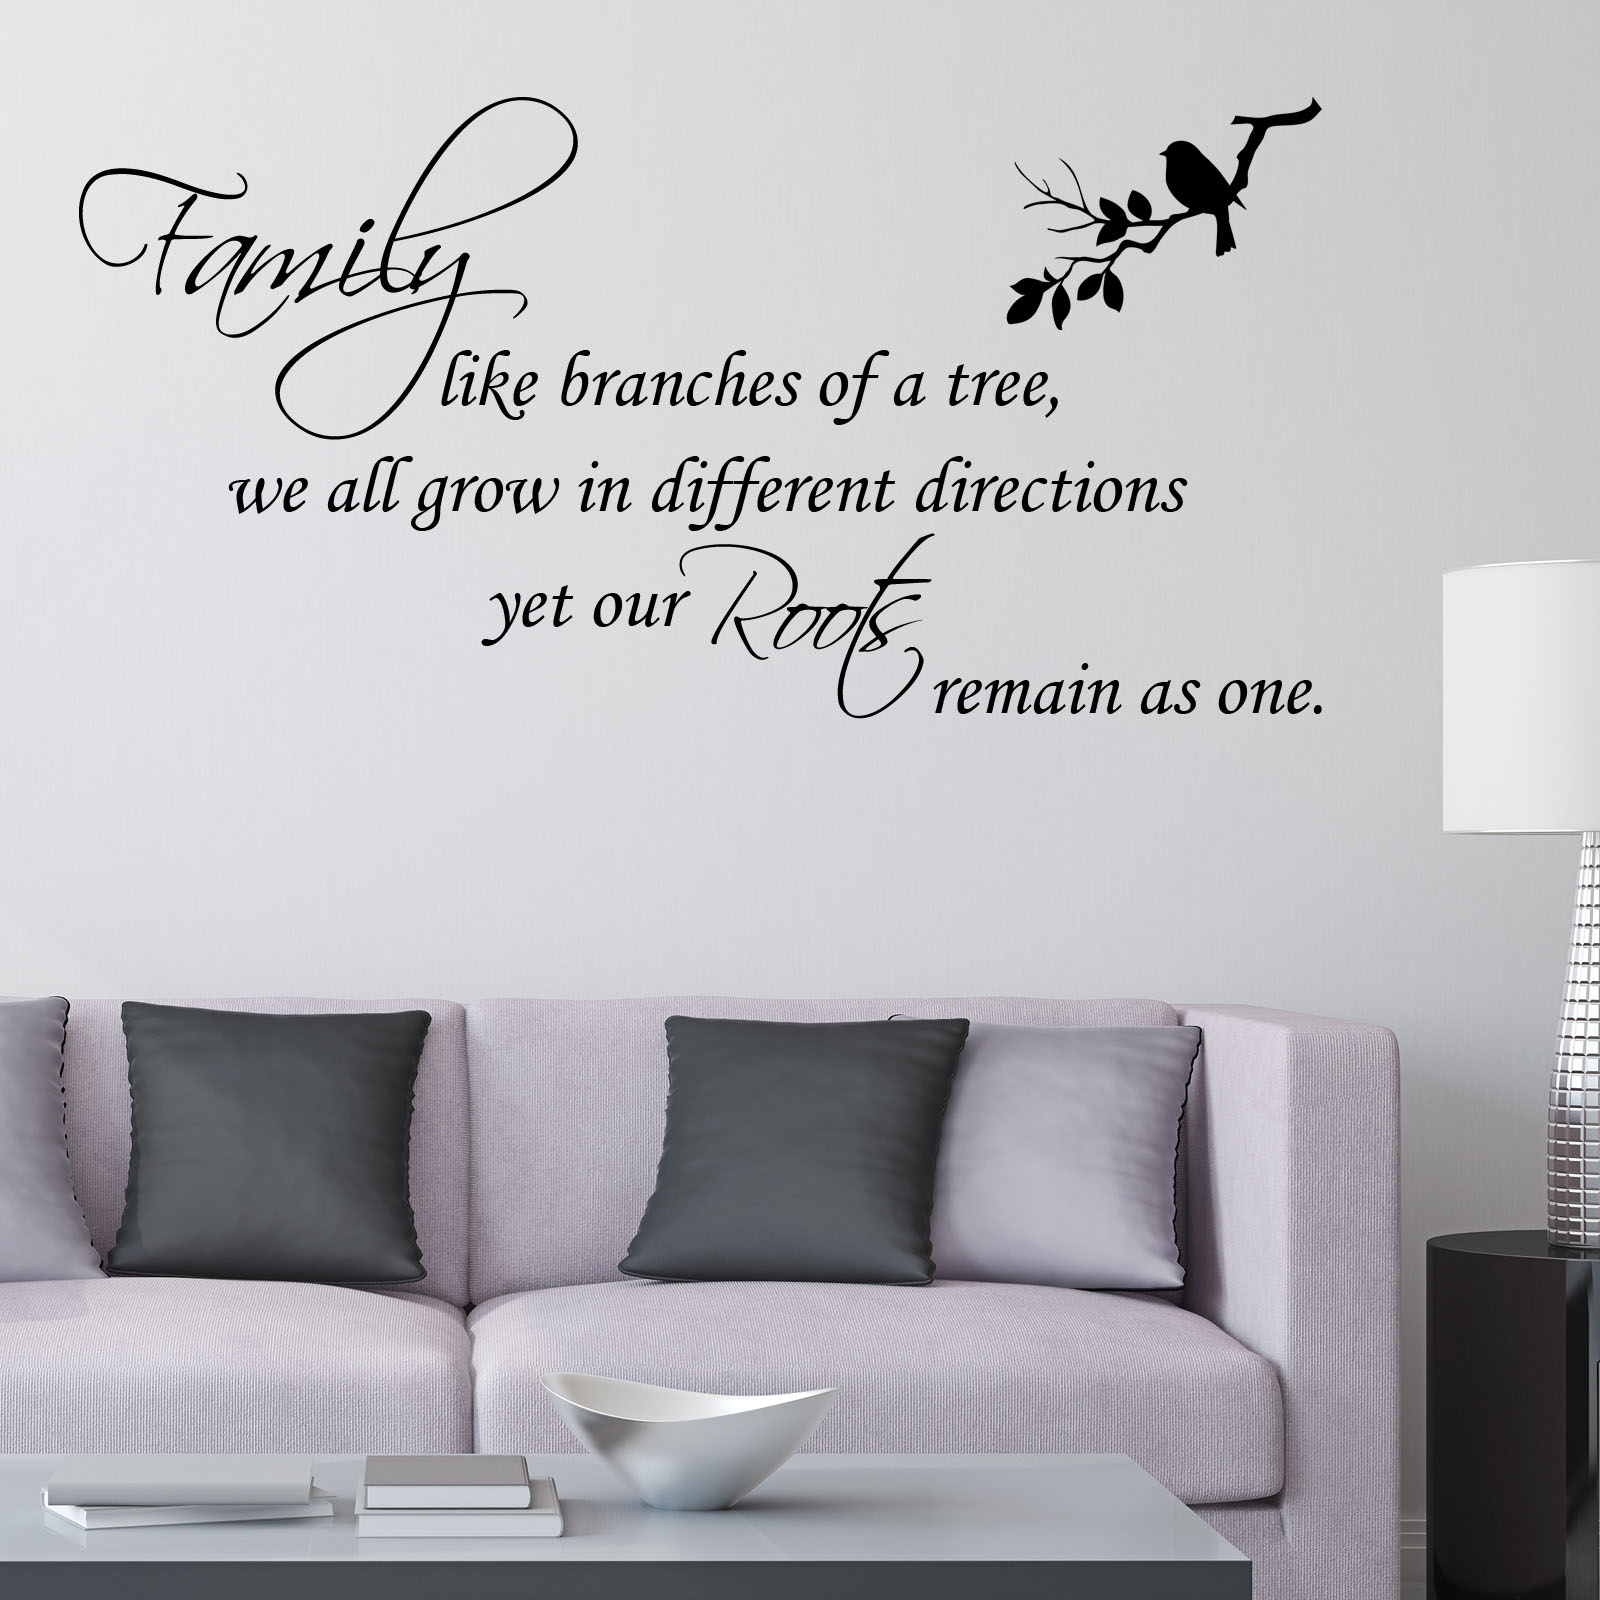 Awesome Family Like Branches Of A Tree ~ Wall Sticker / Decals Part 21